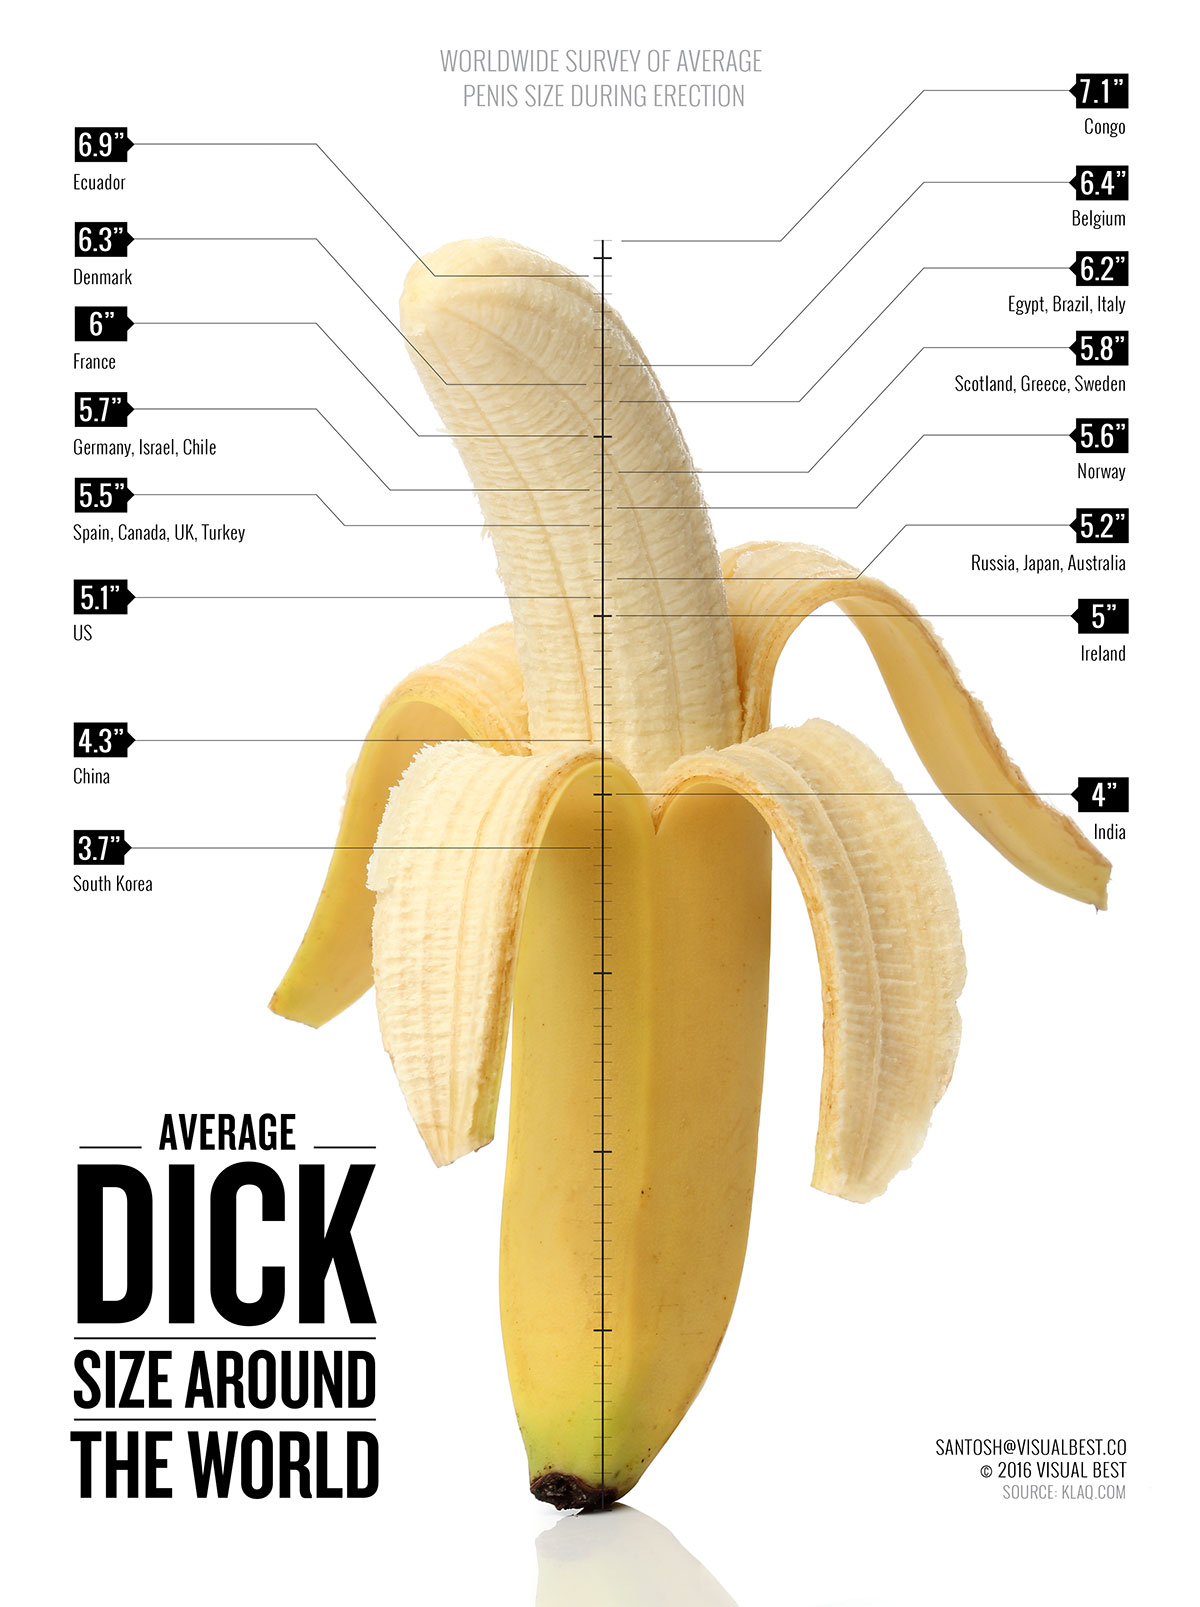 What is average length of a penis